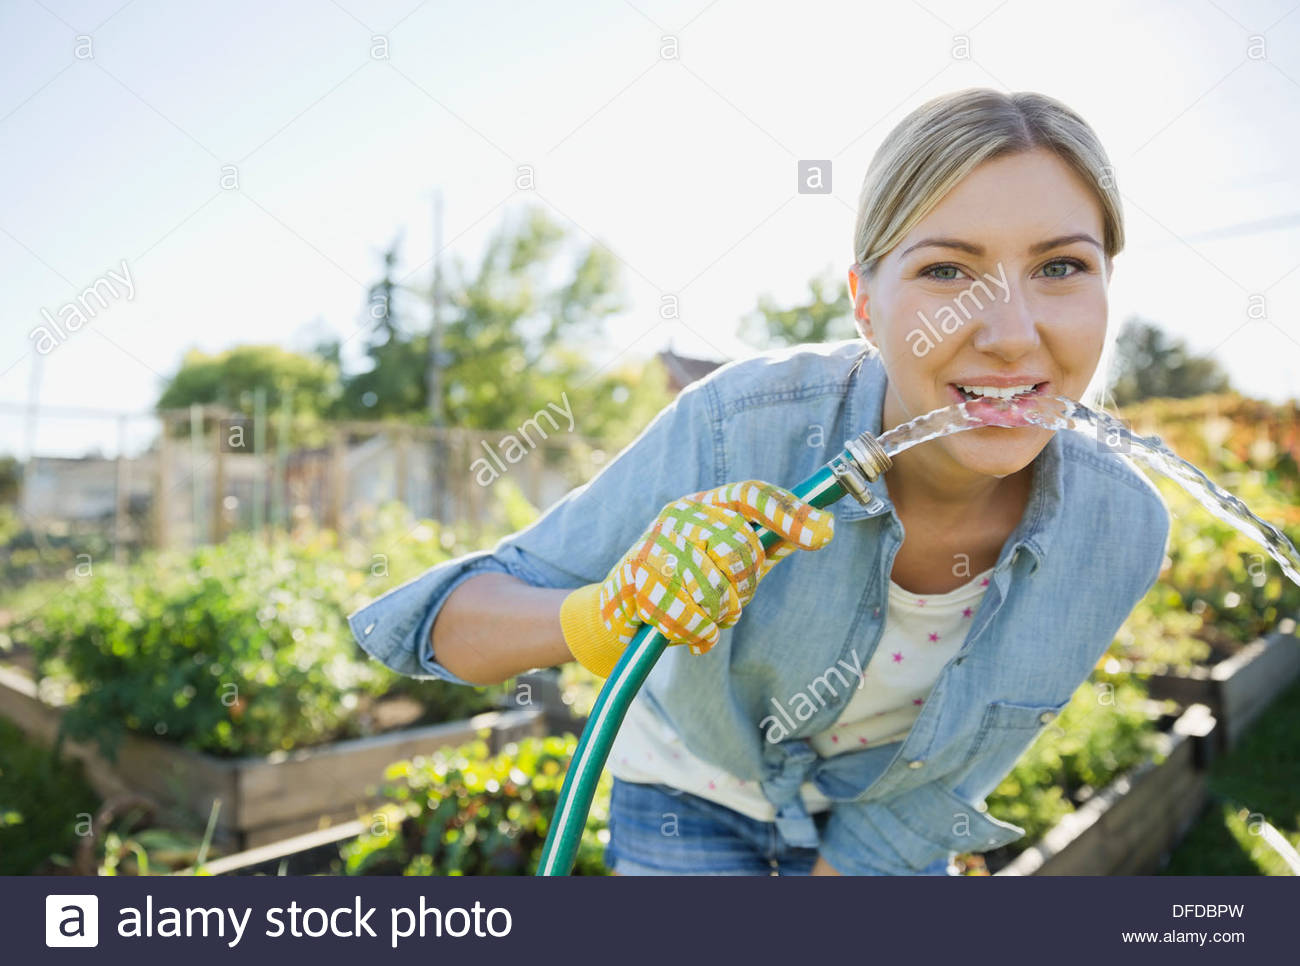 Woman bending over to drink water from garden hose  sc 1 st  Alamy & Woman bending over to drink water from garden hose Stock Photo ...